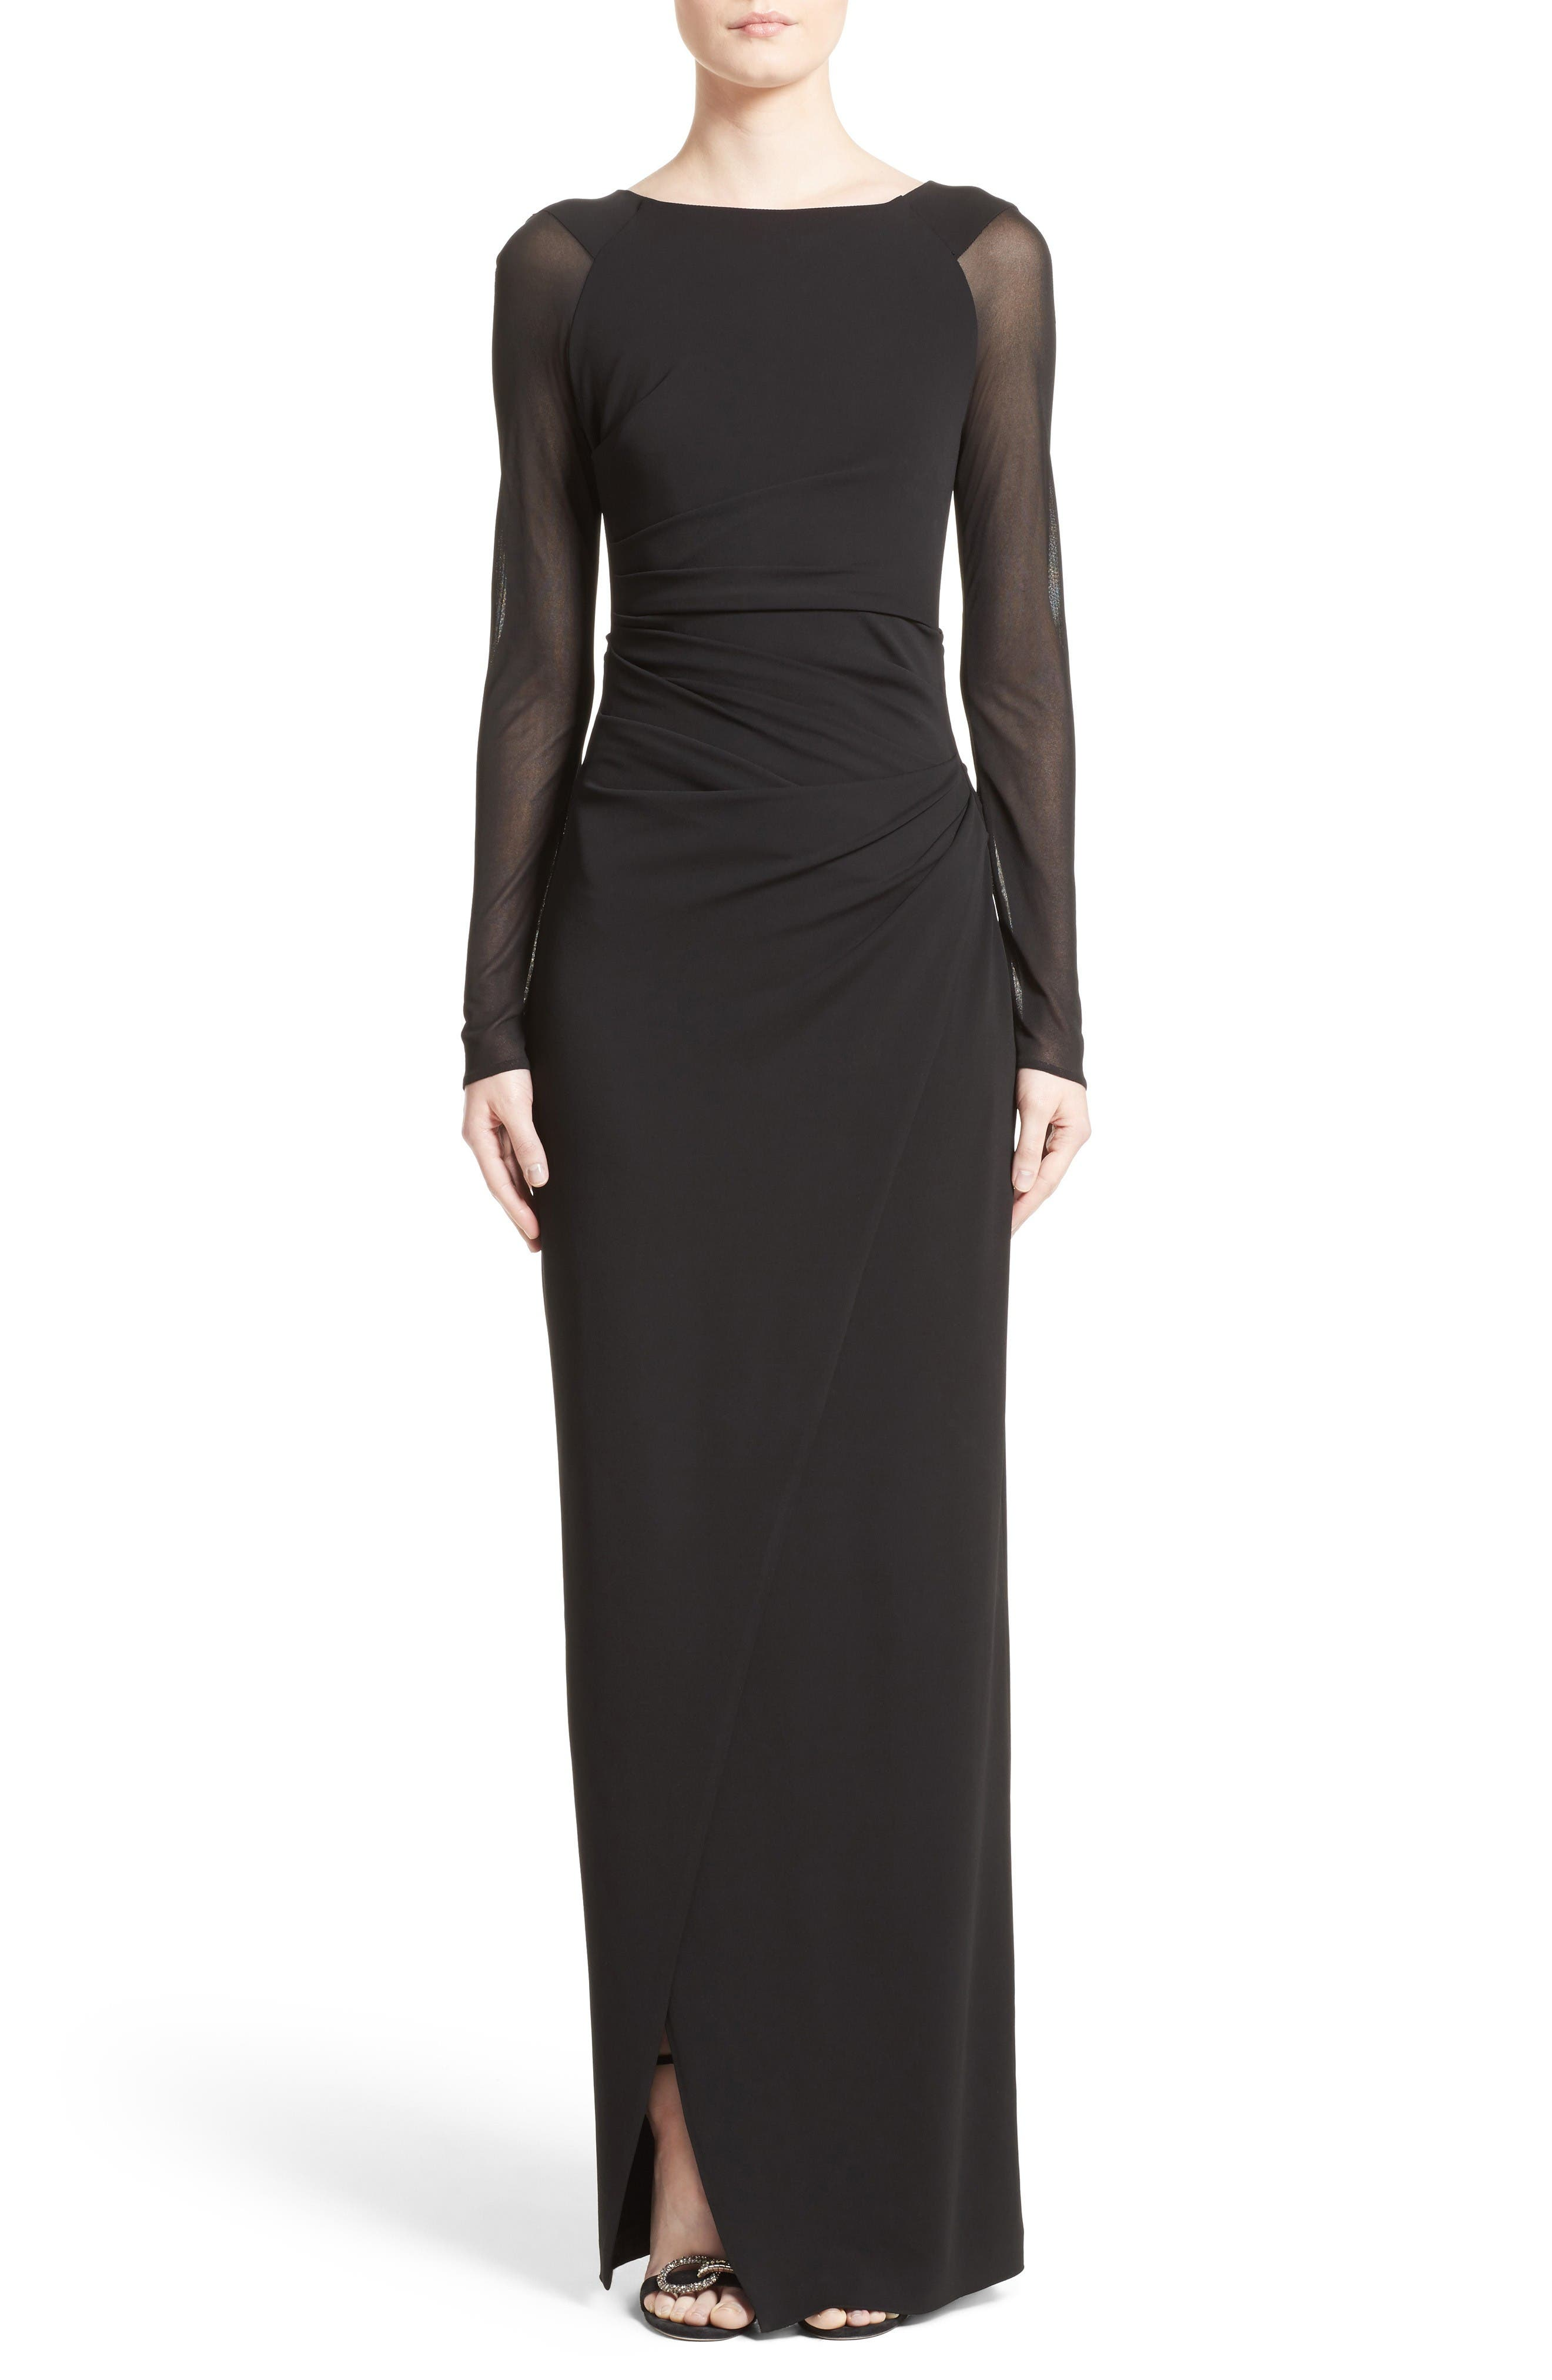 Alternate Image 1 Selected - Talbot Runhof Sheer Sleeve Jersey Column Gown